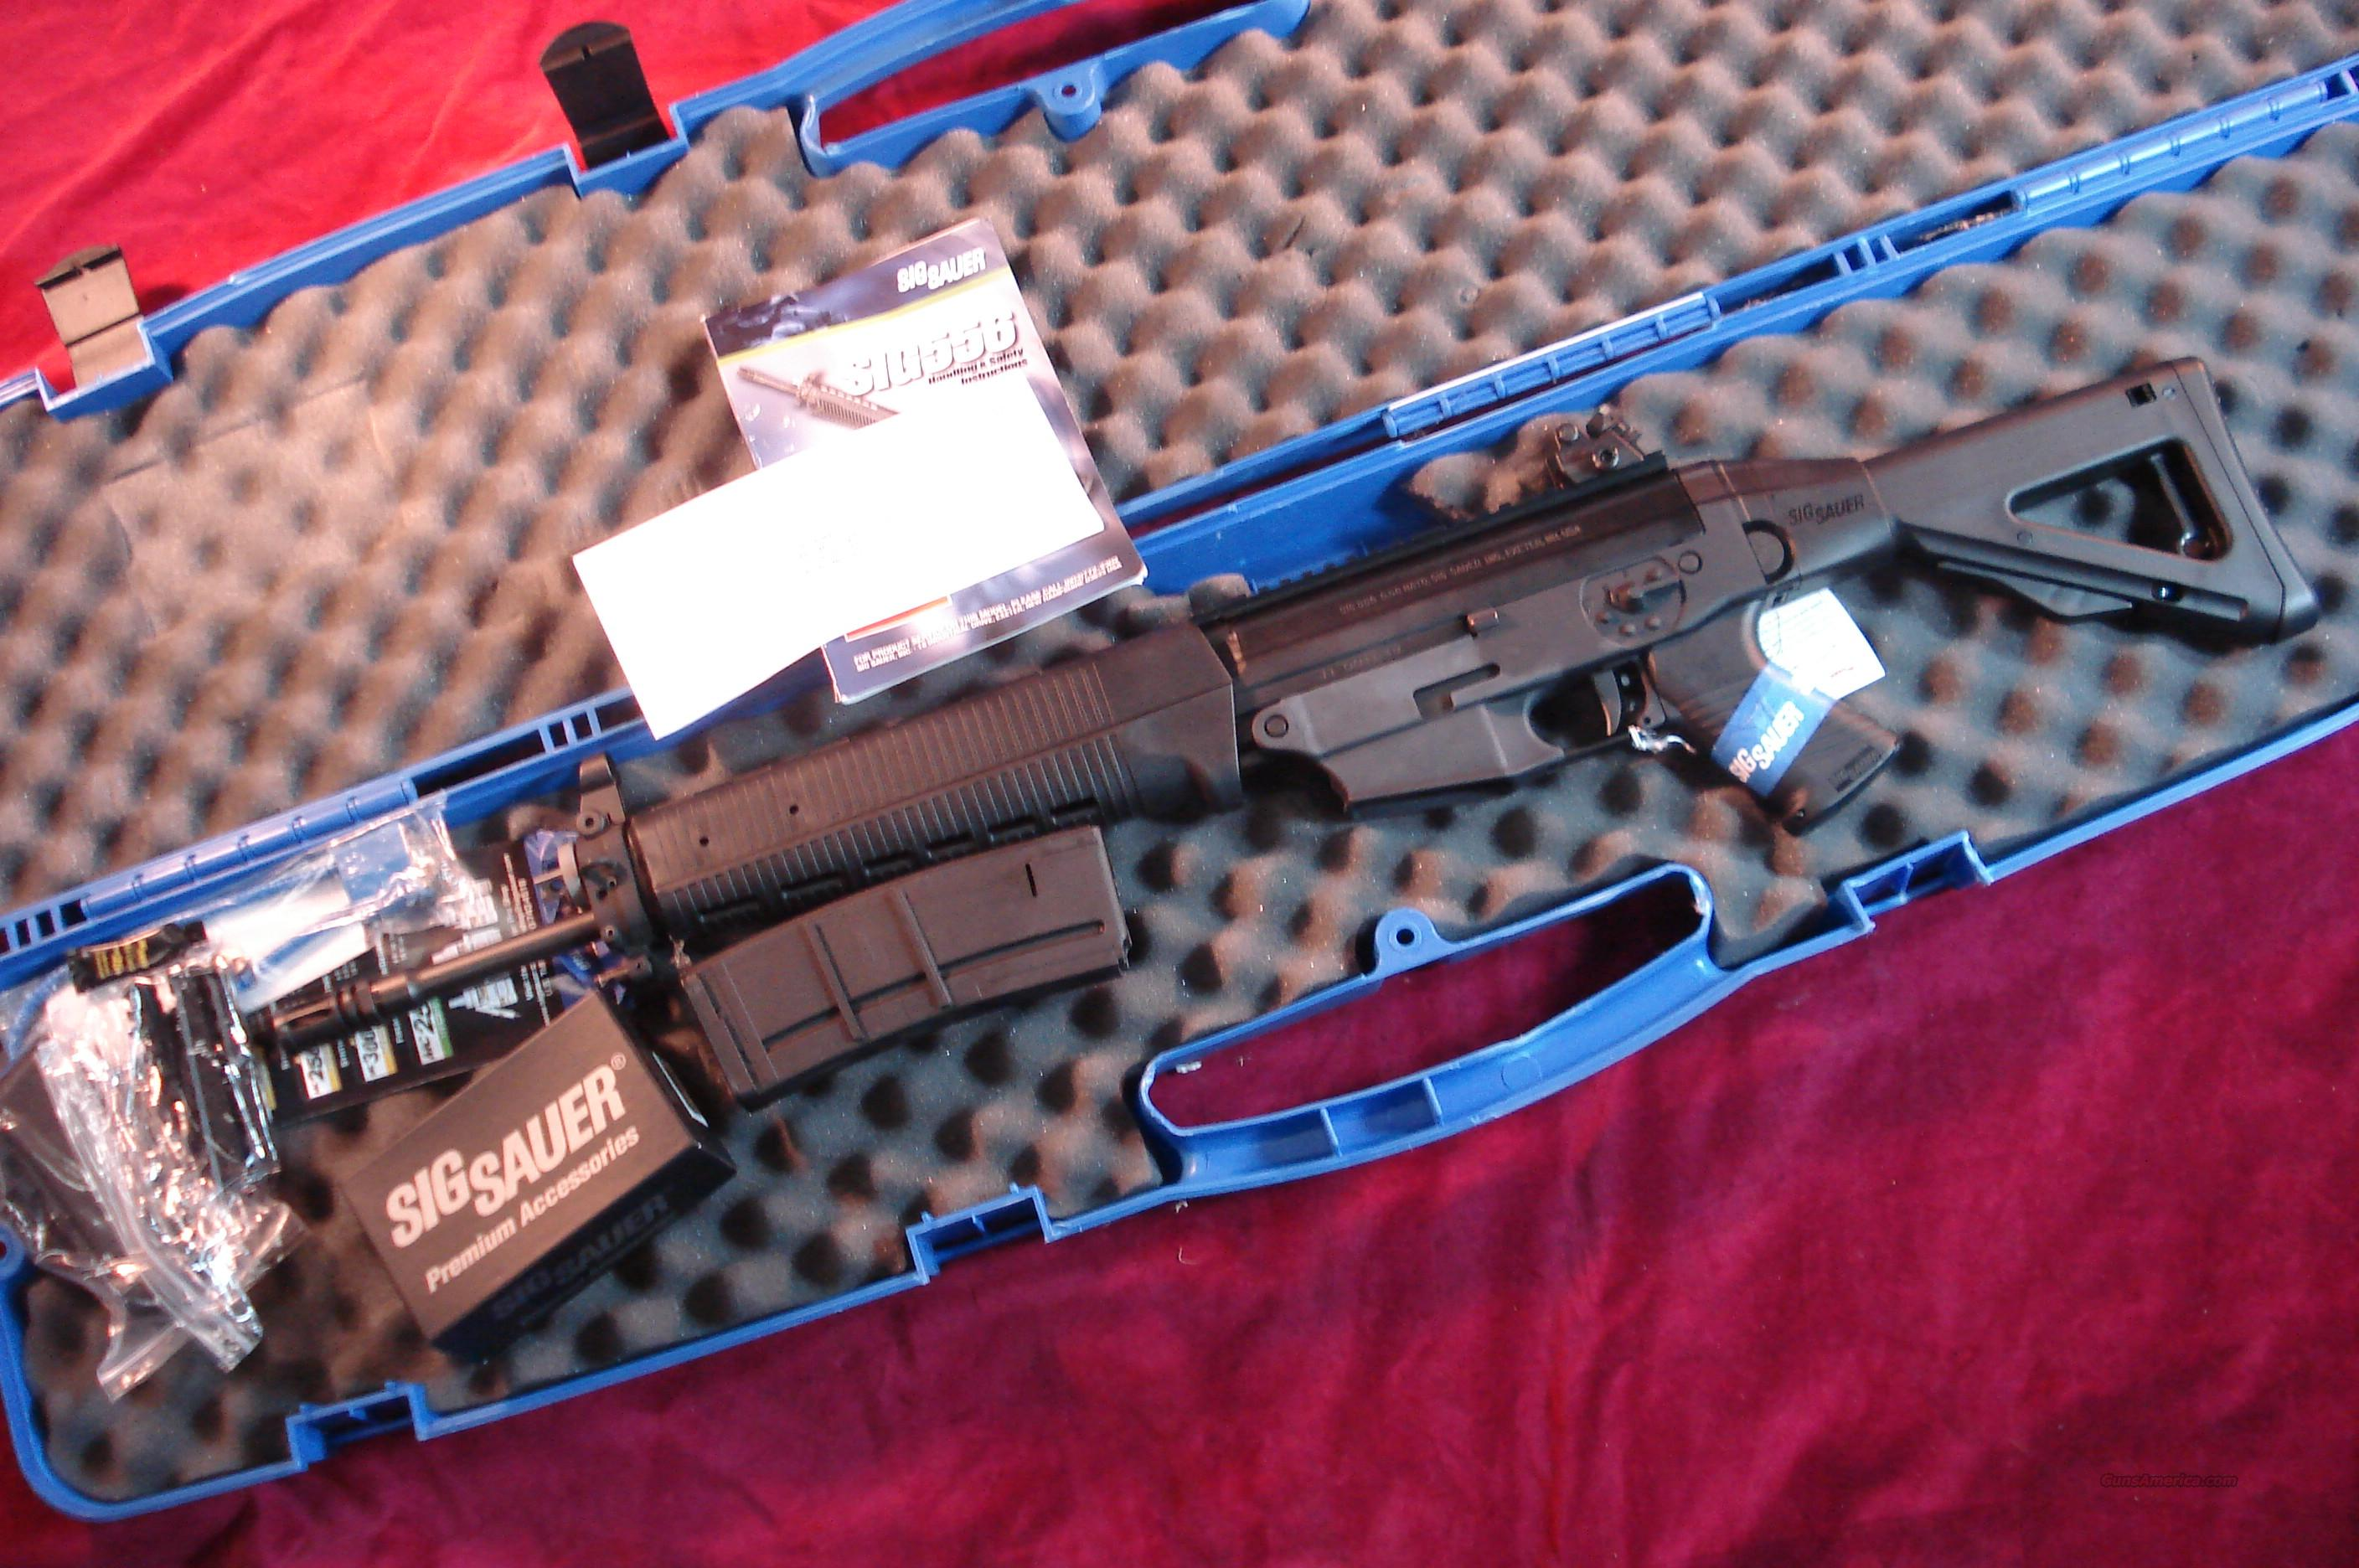 SIG SAUER 556  CARBINE RIFLE WITH ROTOR DIOPTER REAR SIGHT AND SIGS MINI RED DOT NEW  Guns > Rifles > Sig - Sauer/Sigarms Rifles